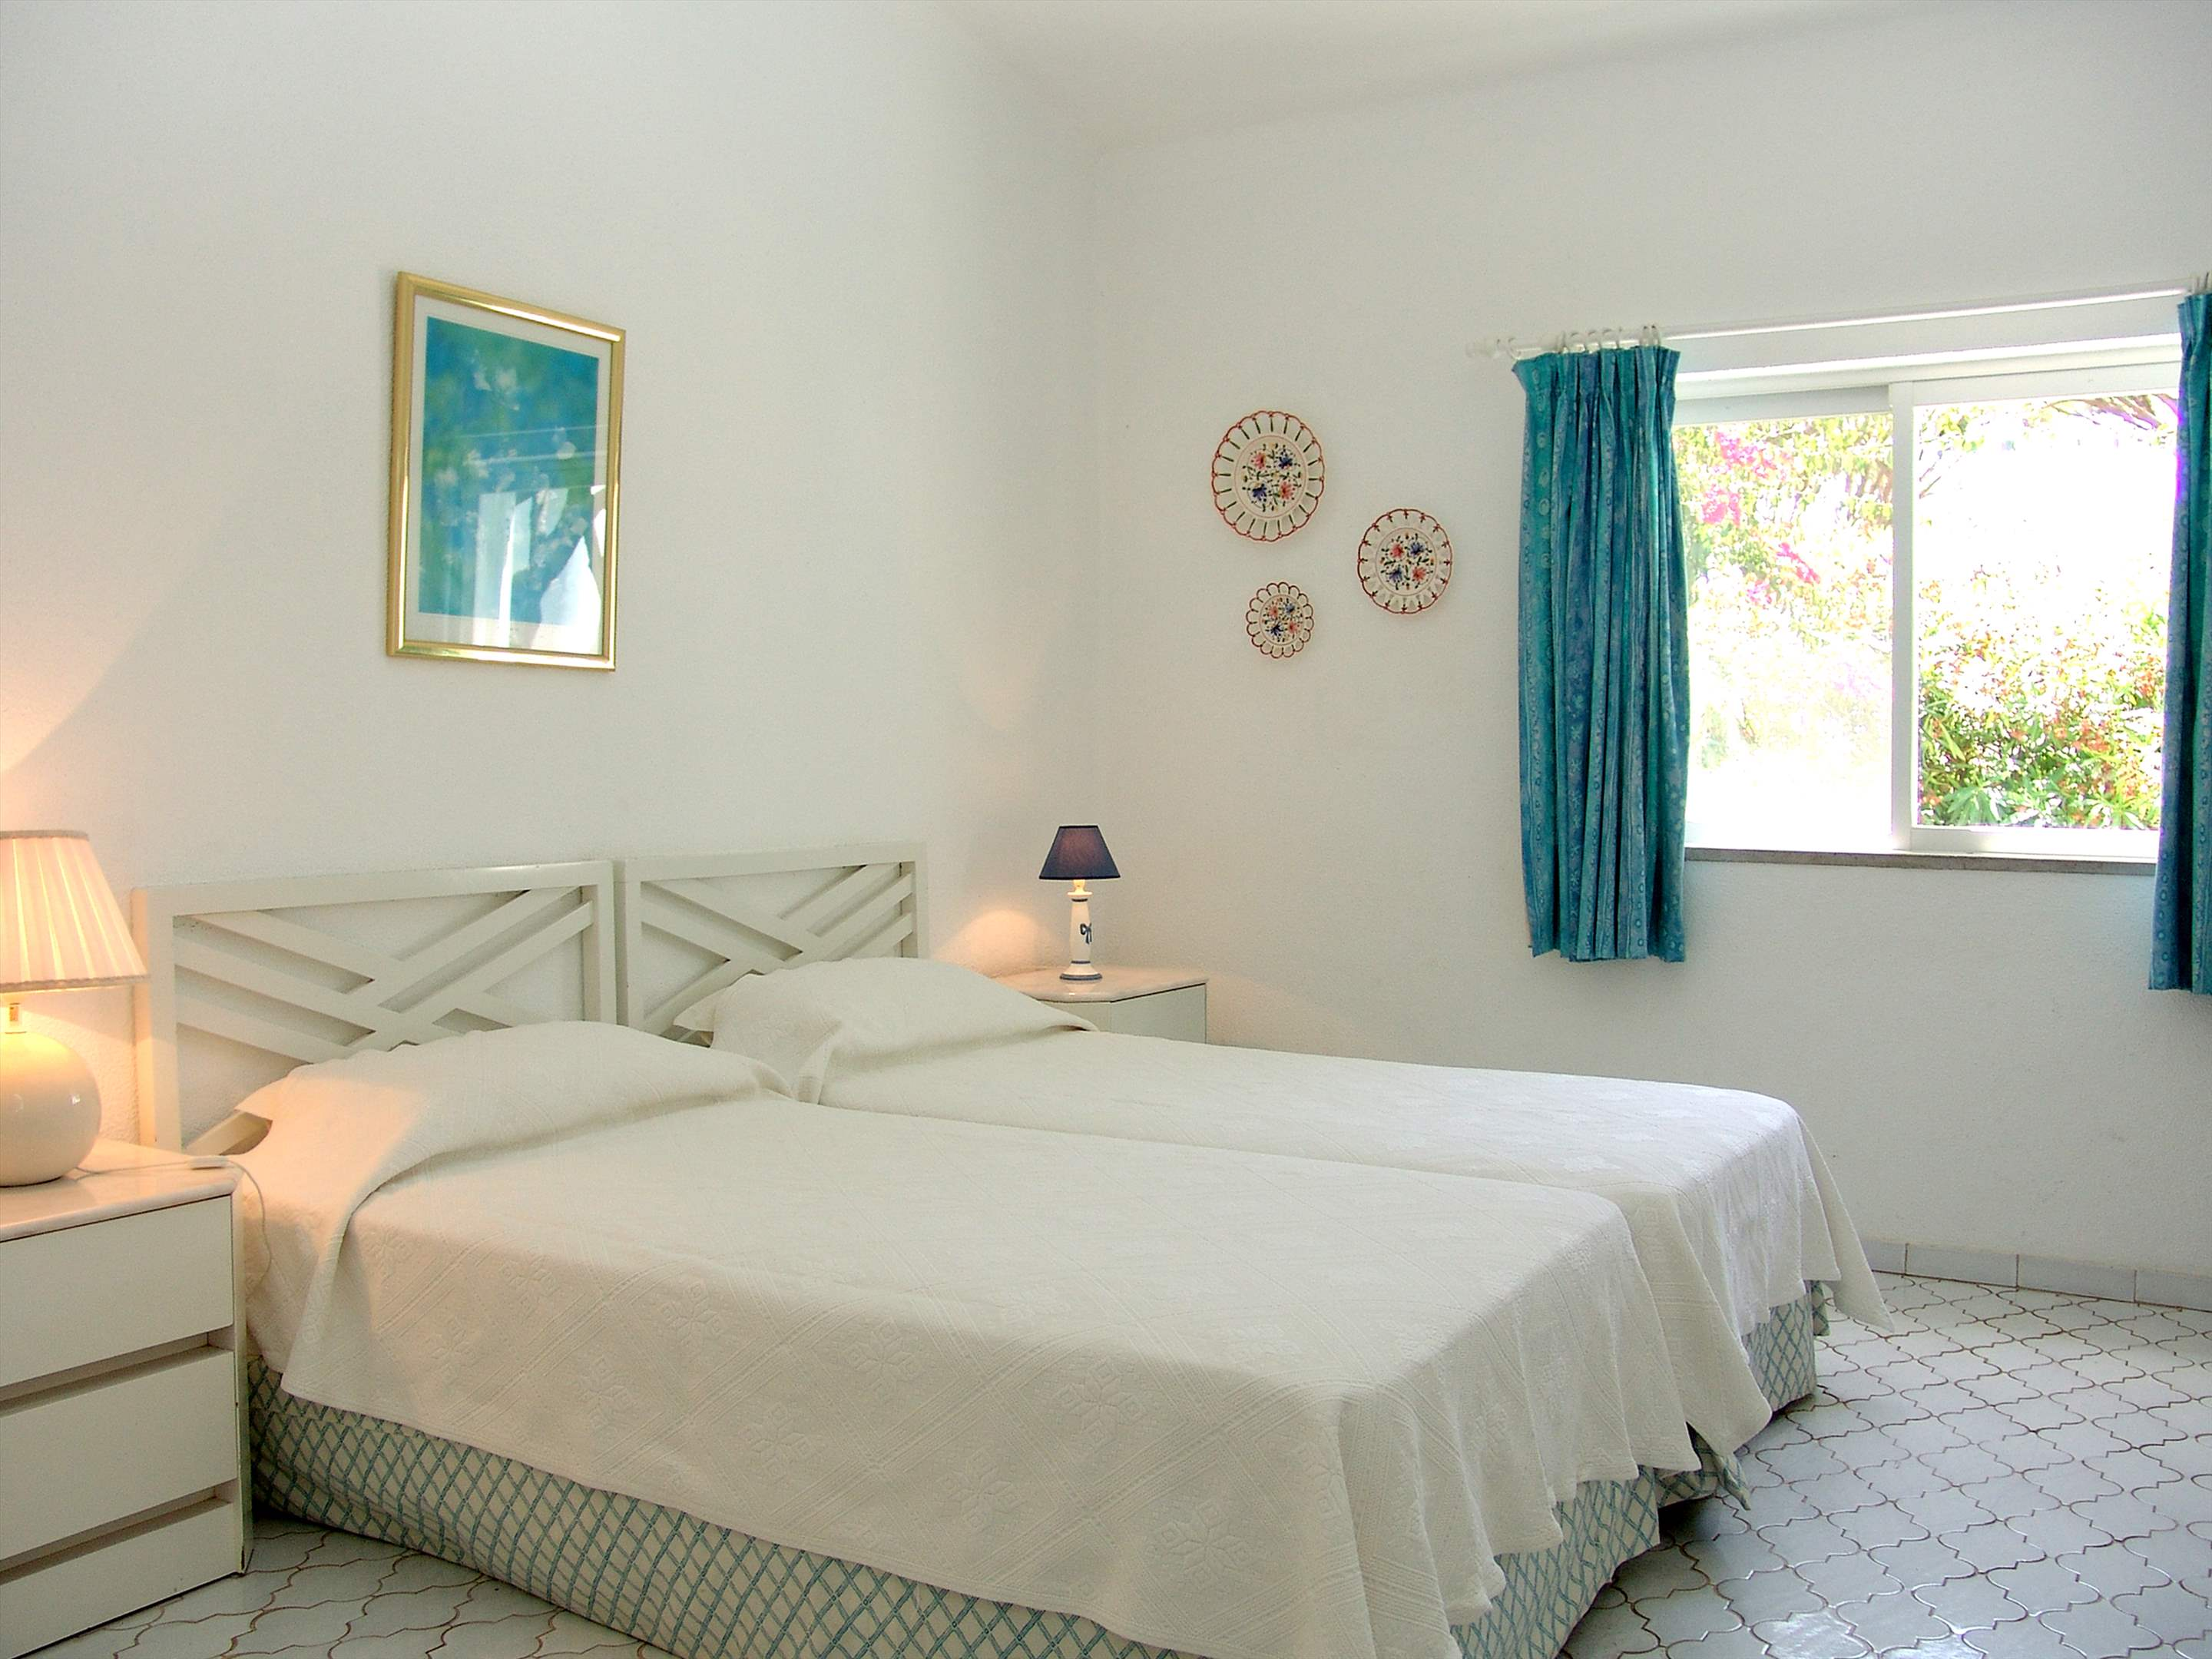 Villa Mimosa 9, 3 bedroom villa in Vale do Lobo, Algarve Photo #16